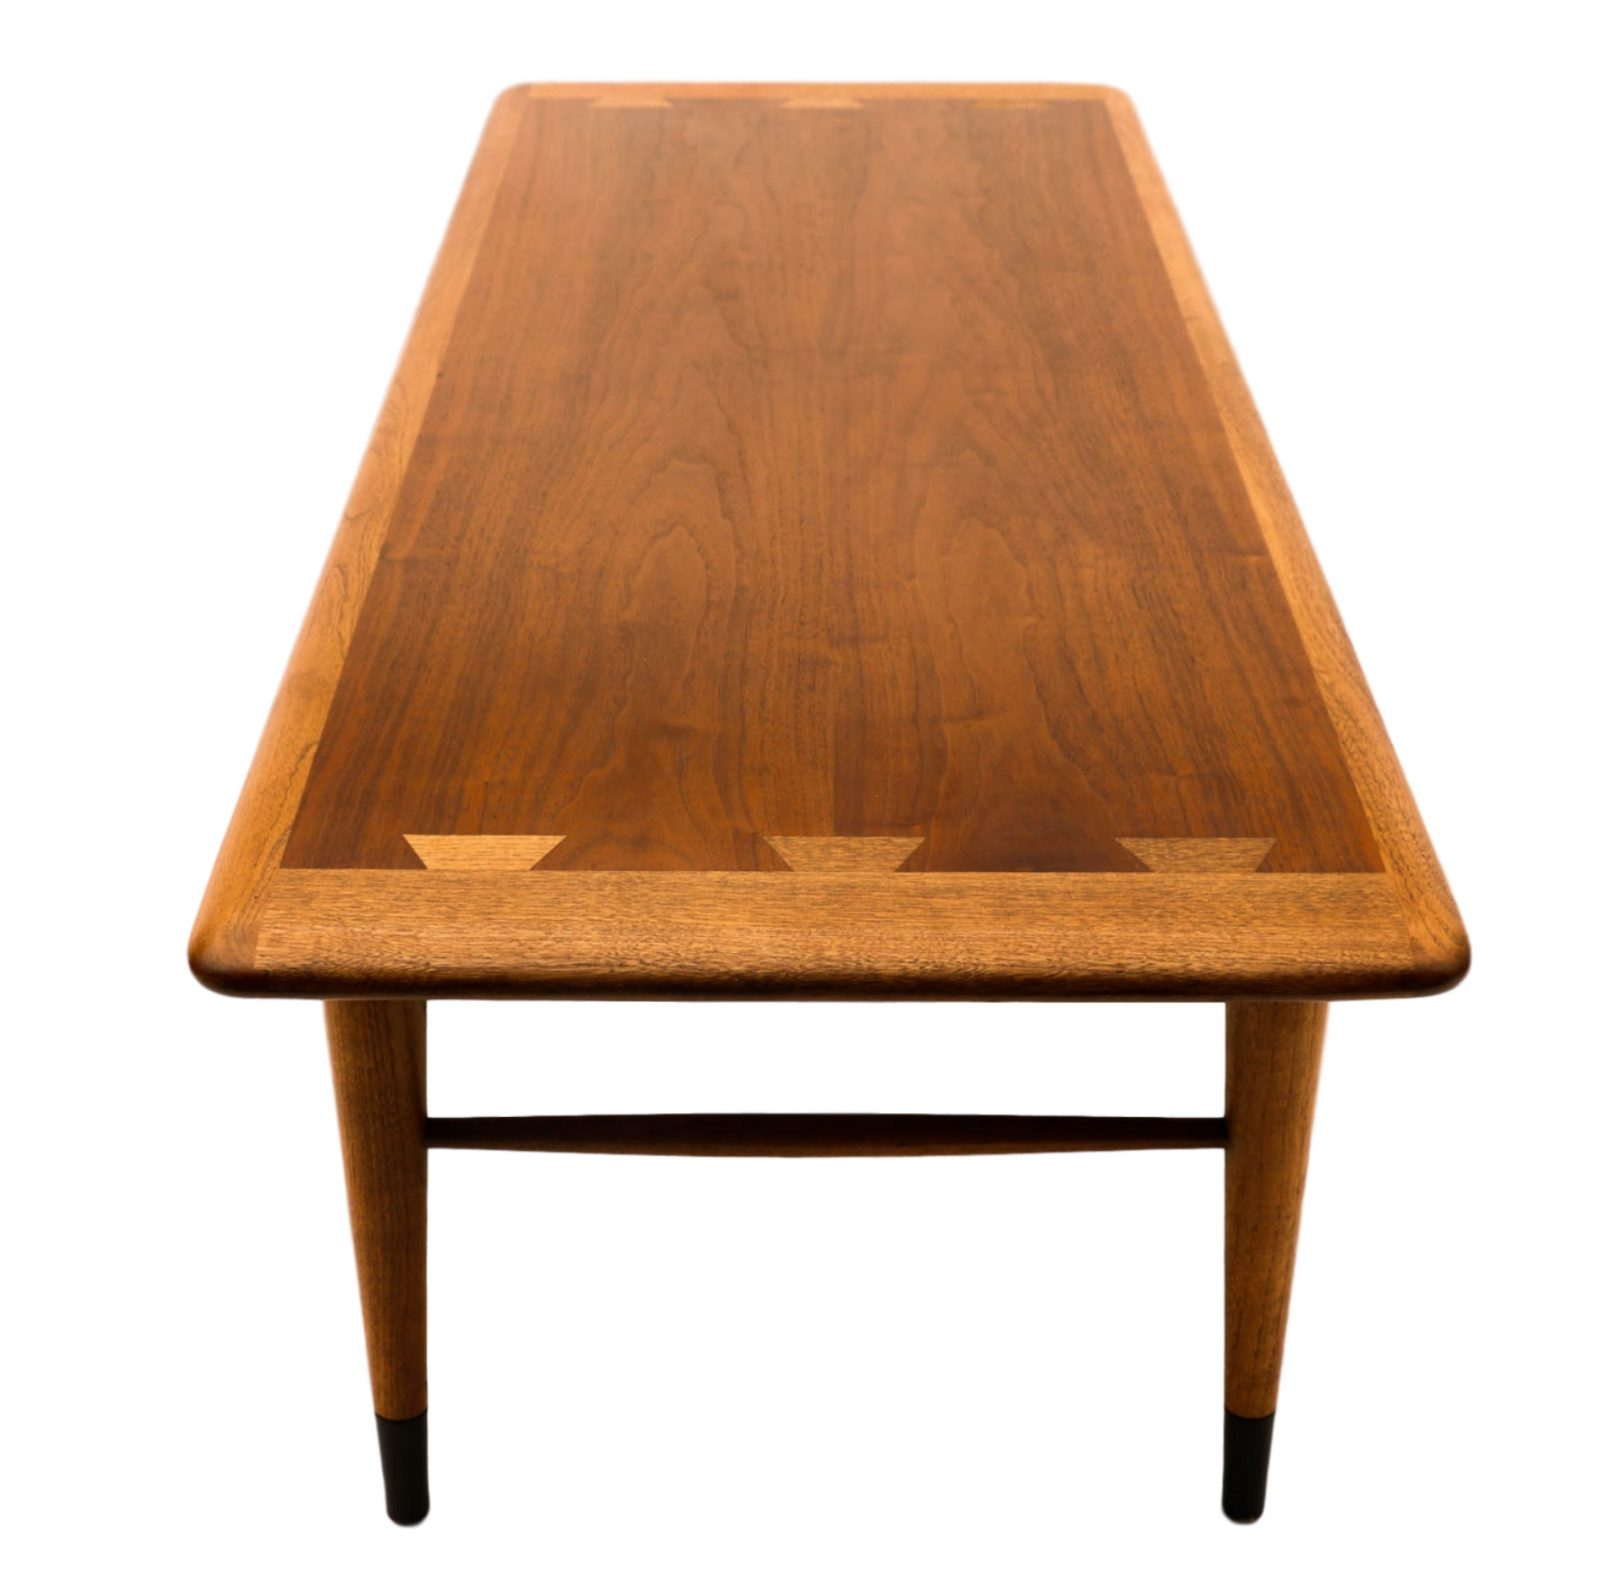 Mid Century Lane Copenhagen Drop Leaf Coffee Table: Mid-Century Modern Furniture LANE Coffee Table Inlaid